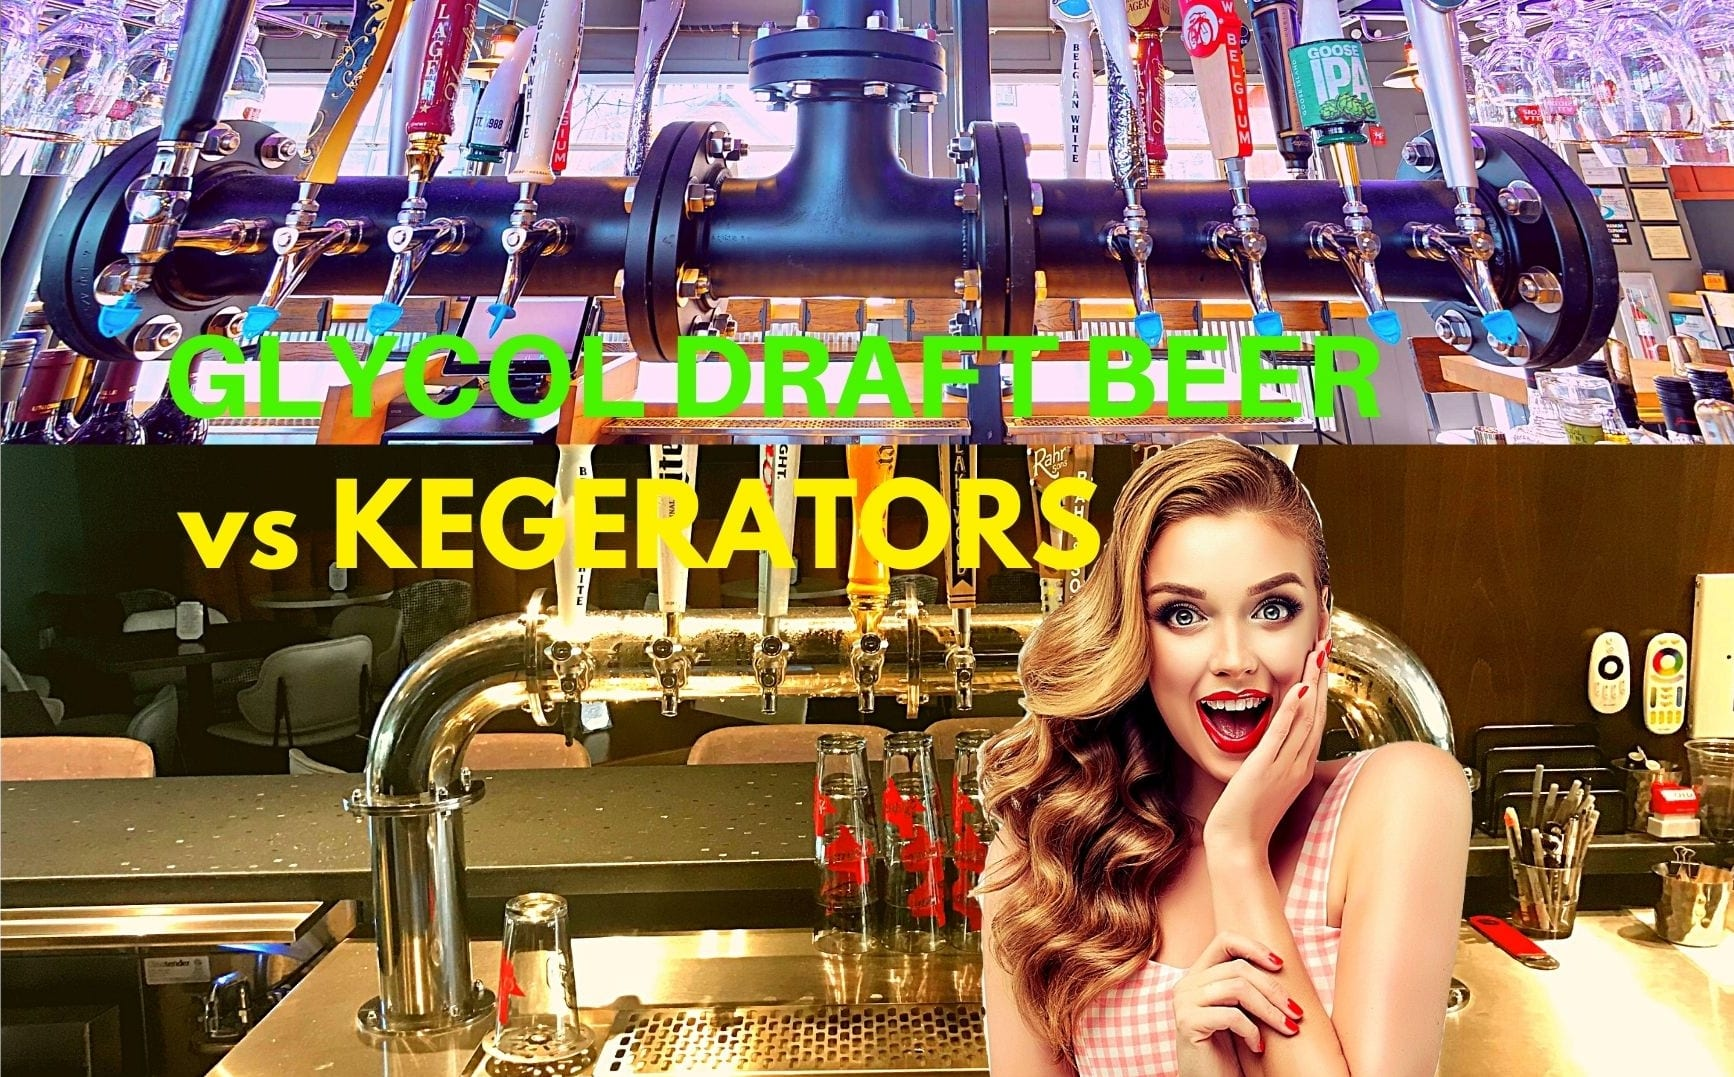 Which draft beer system is better - glycol-cooled or kegerators?